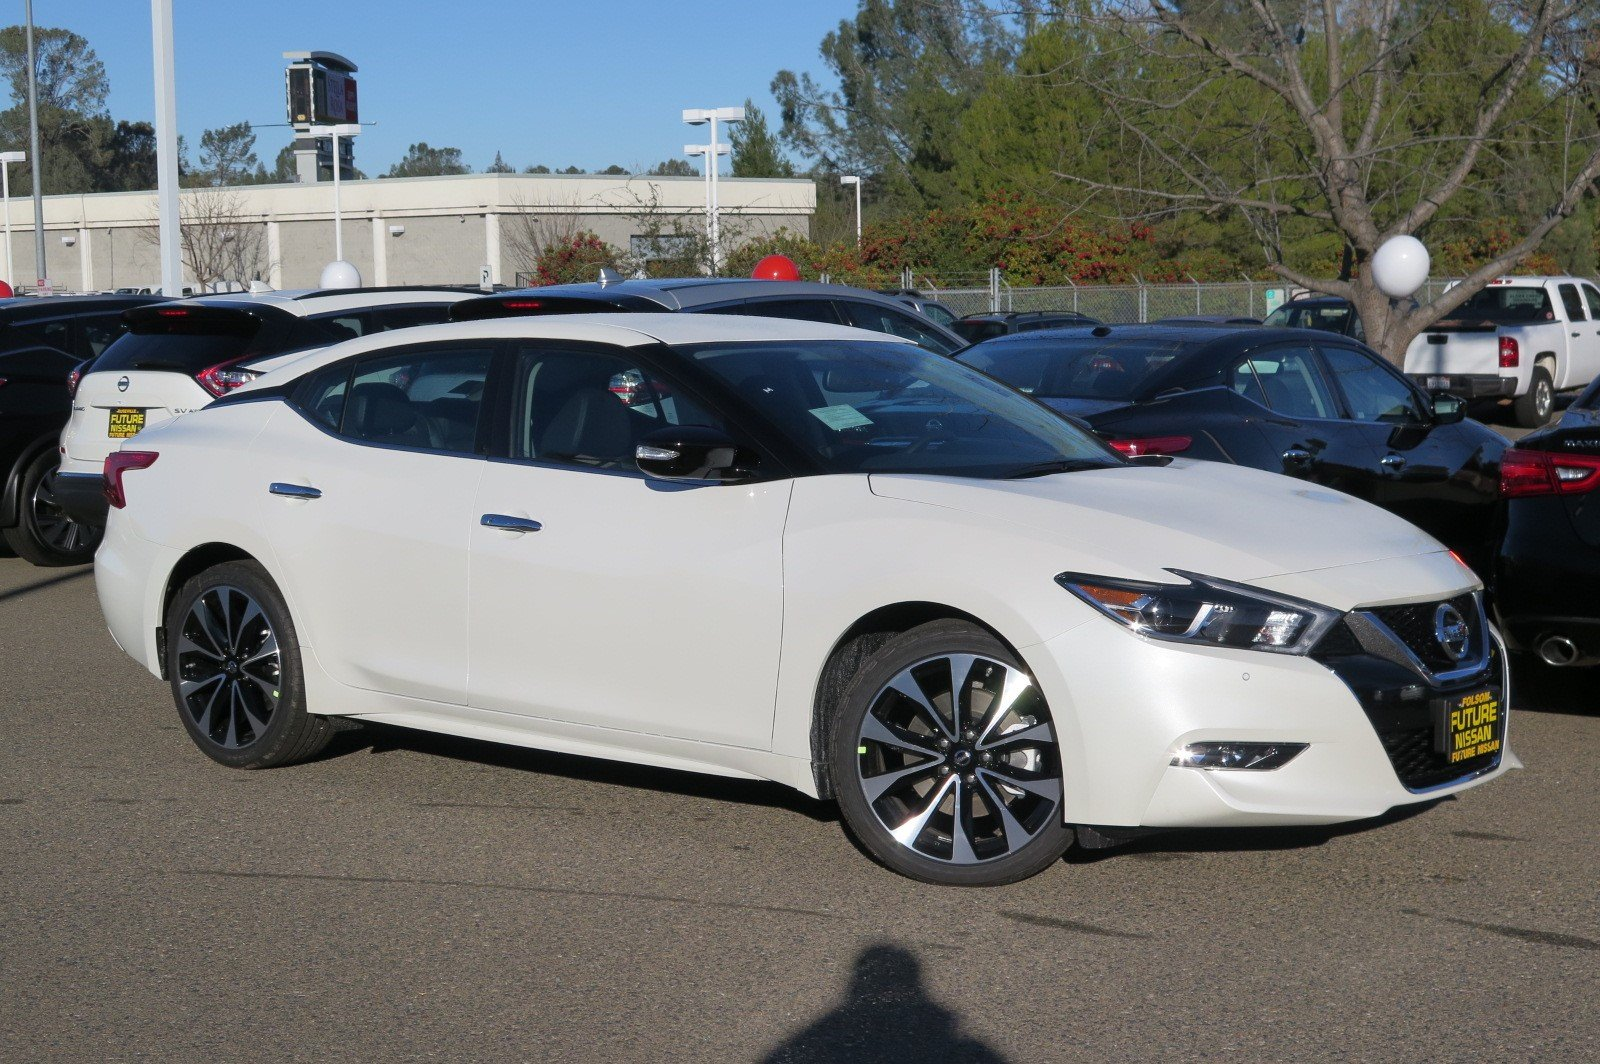 New 2018 Nissan Maxima SR 4dr Car in Roseville #F11858 | Future Nissan of Roseville